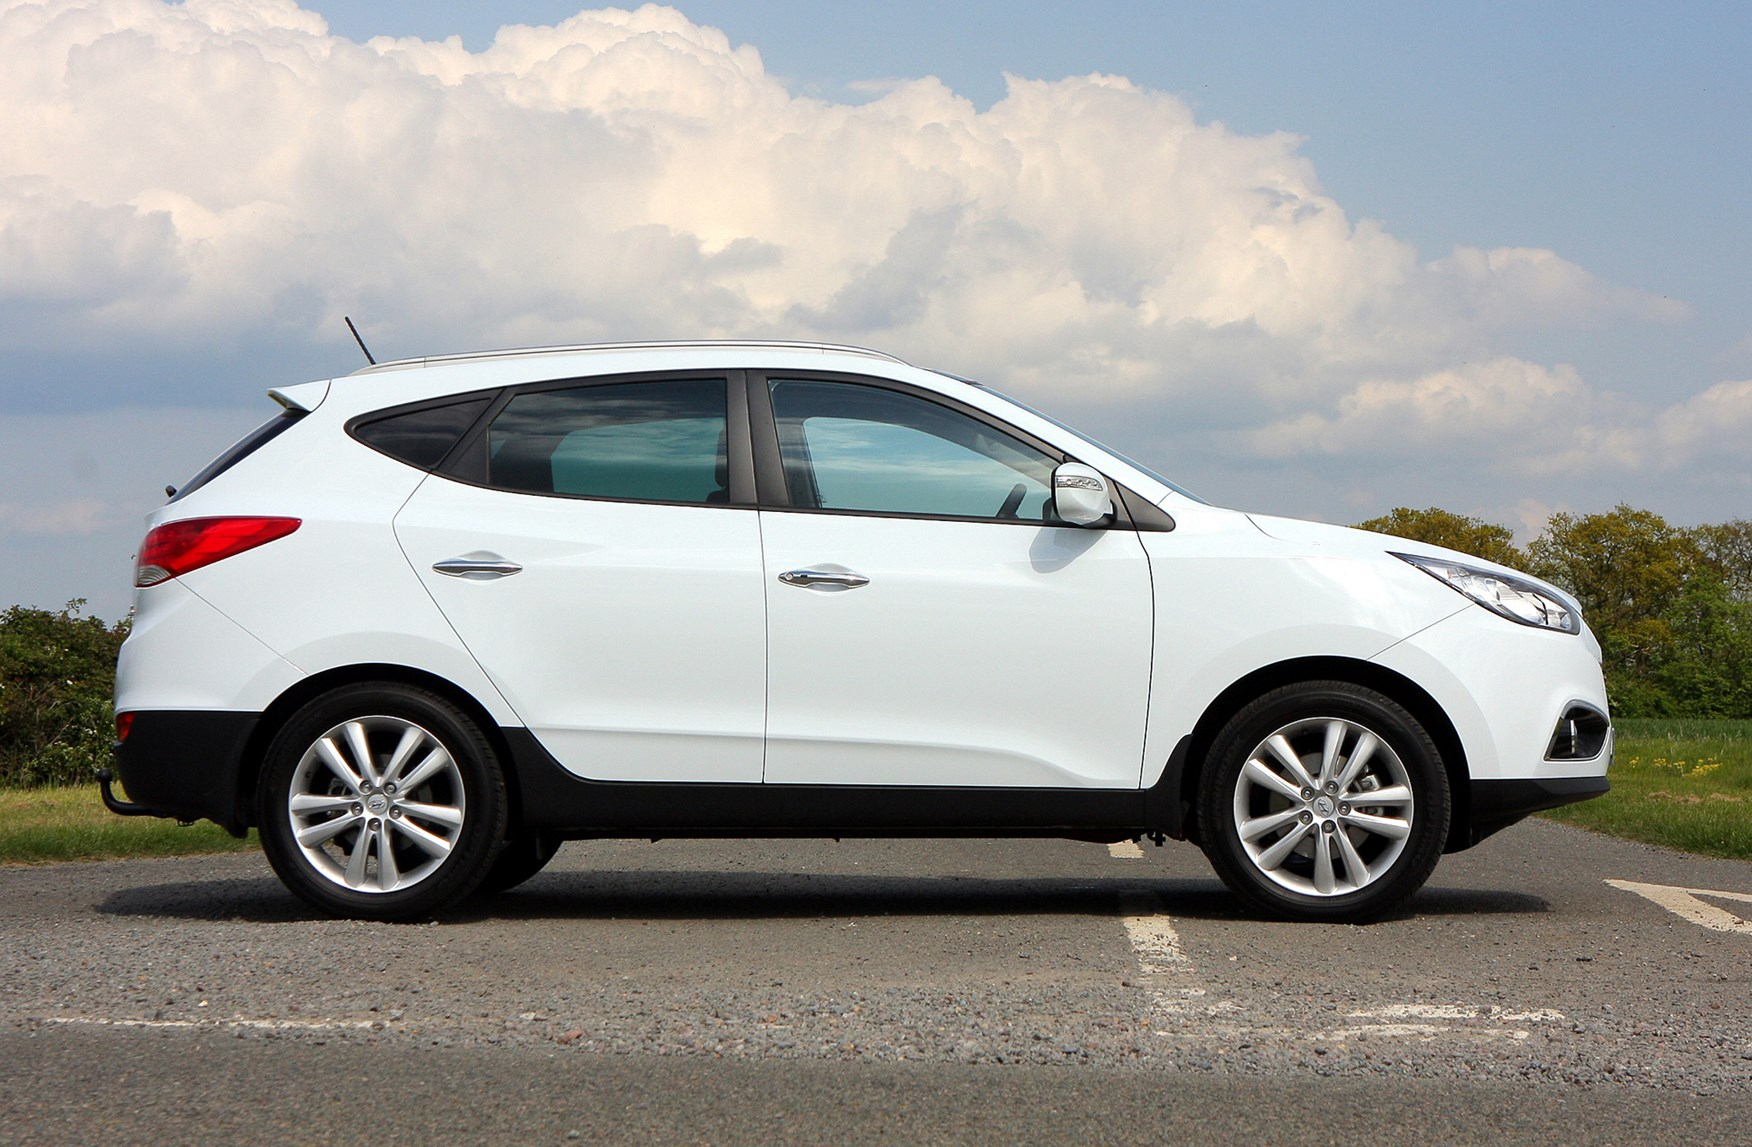 Hyundai ix35 Estate (2010 - 2015) Features, Equipment and Accessories |  Parkers